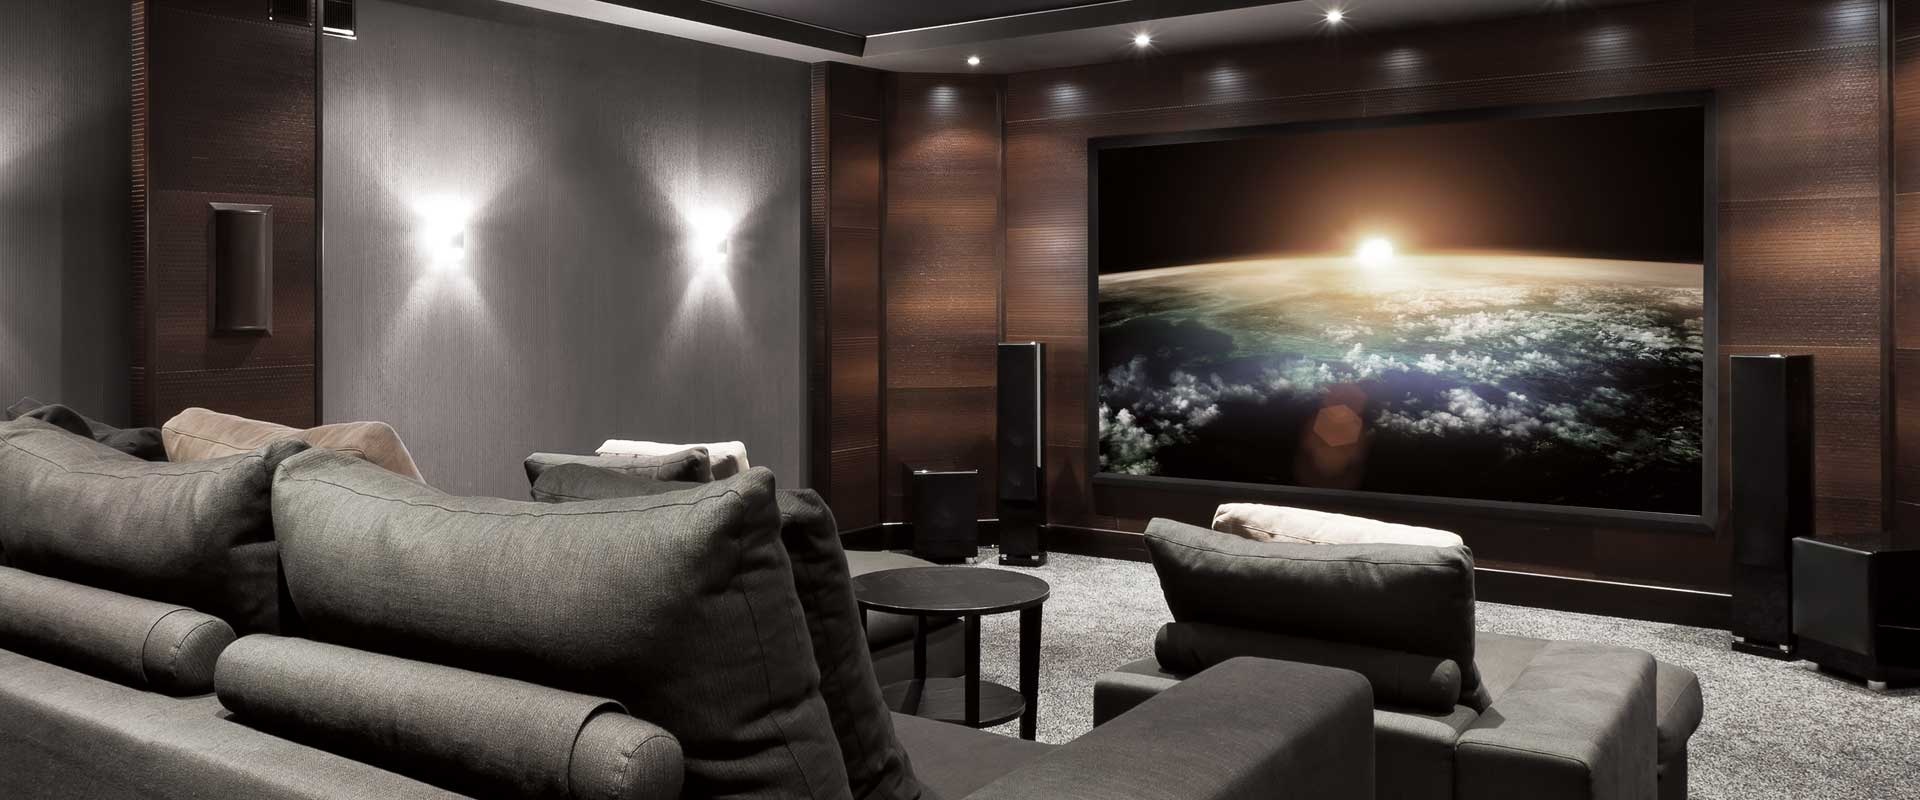 Header - Home Page Slide - Home Theater